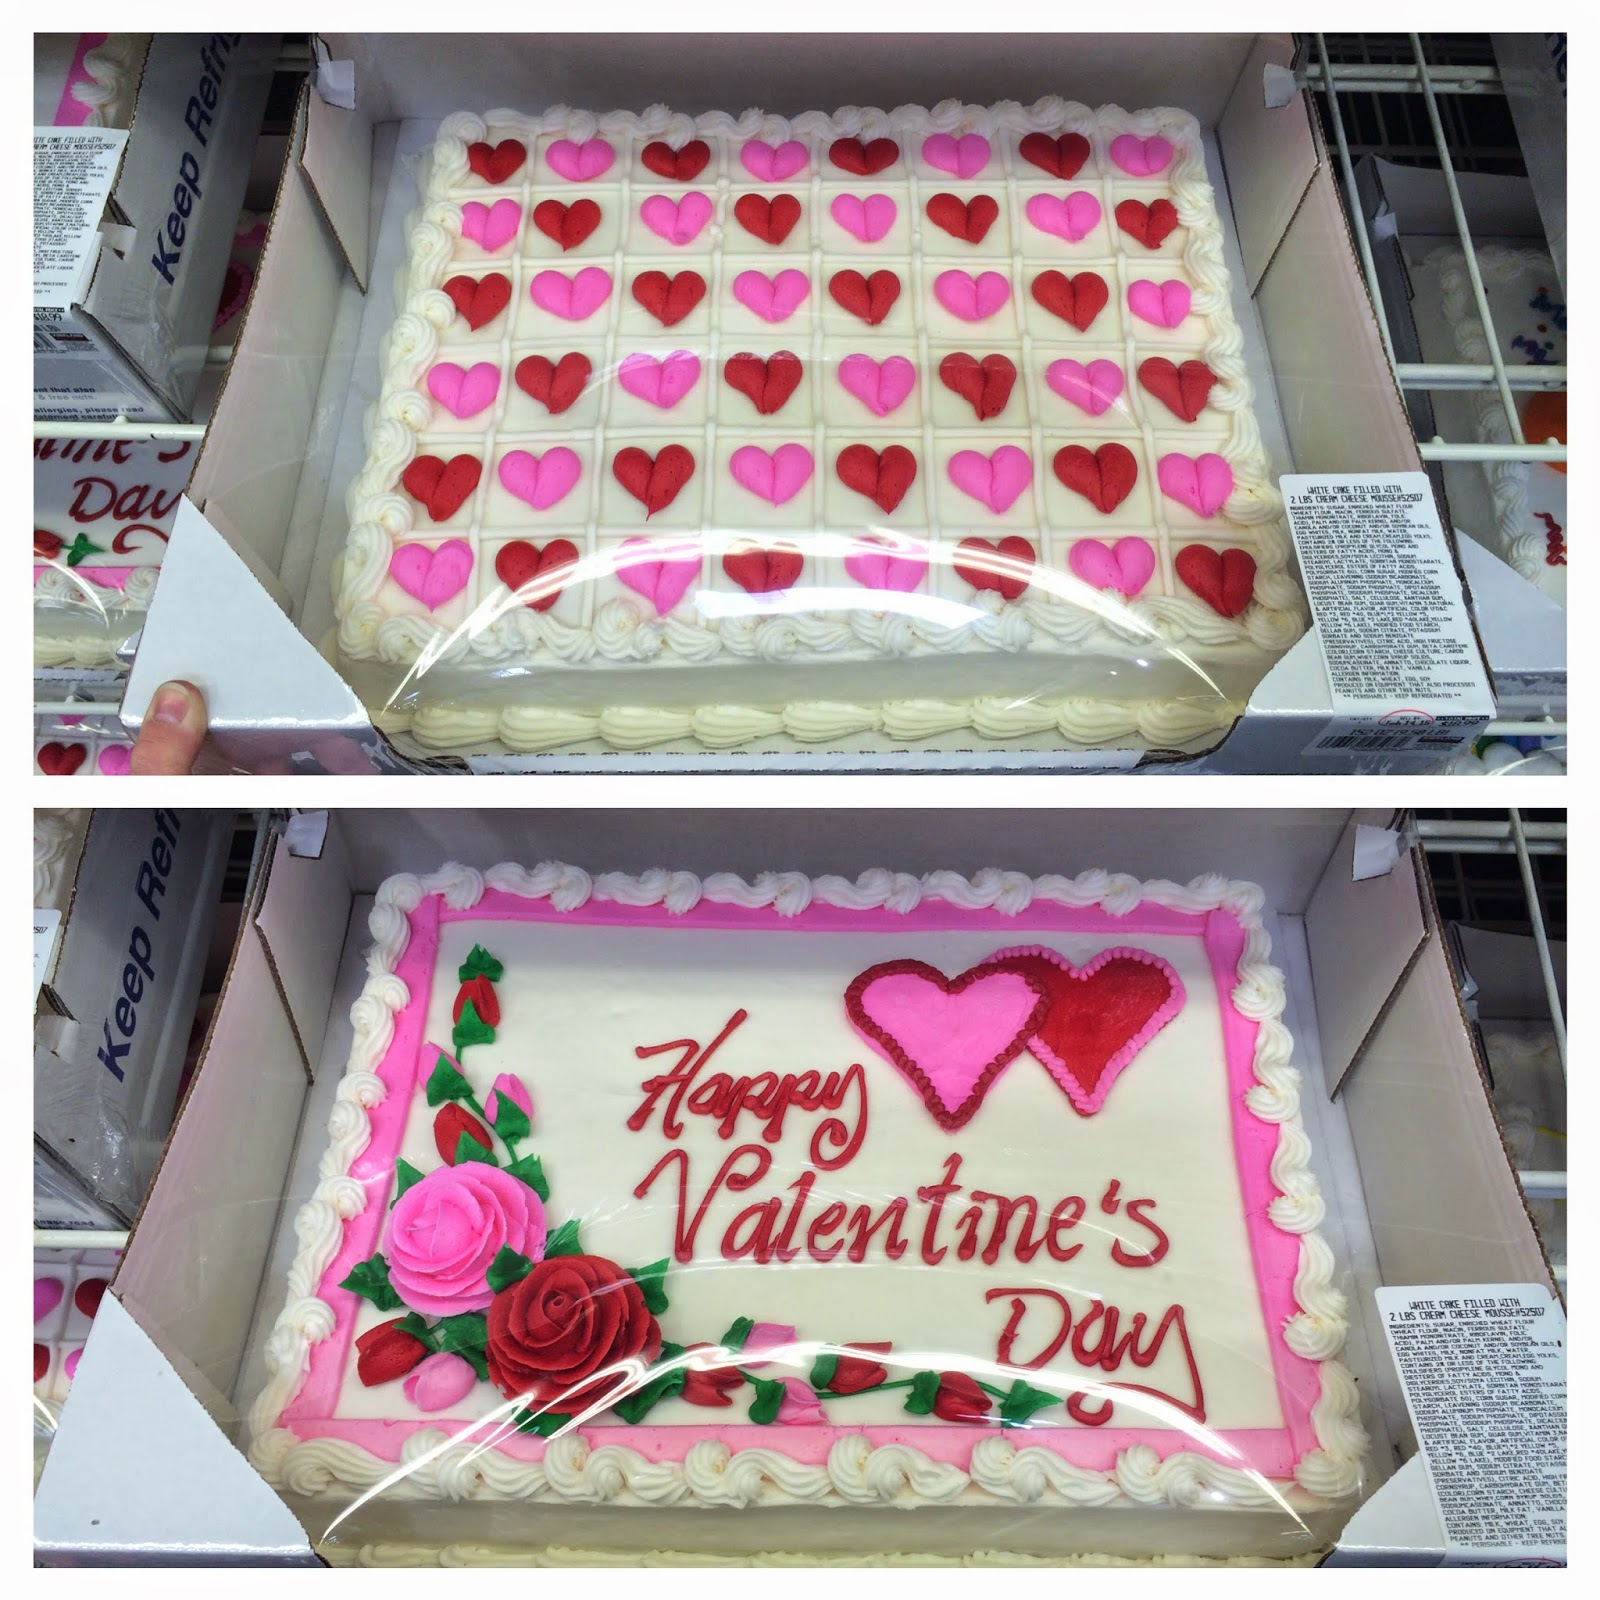 Costco Bakery Sheet Cake Ideas And Designs